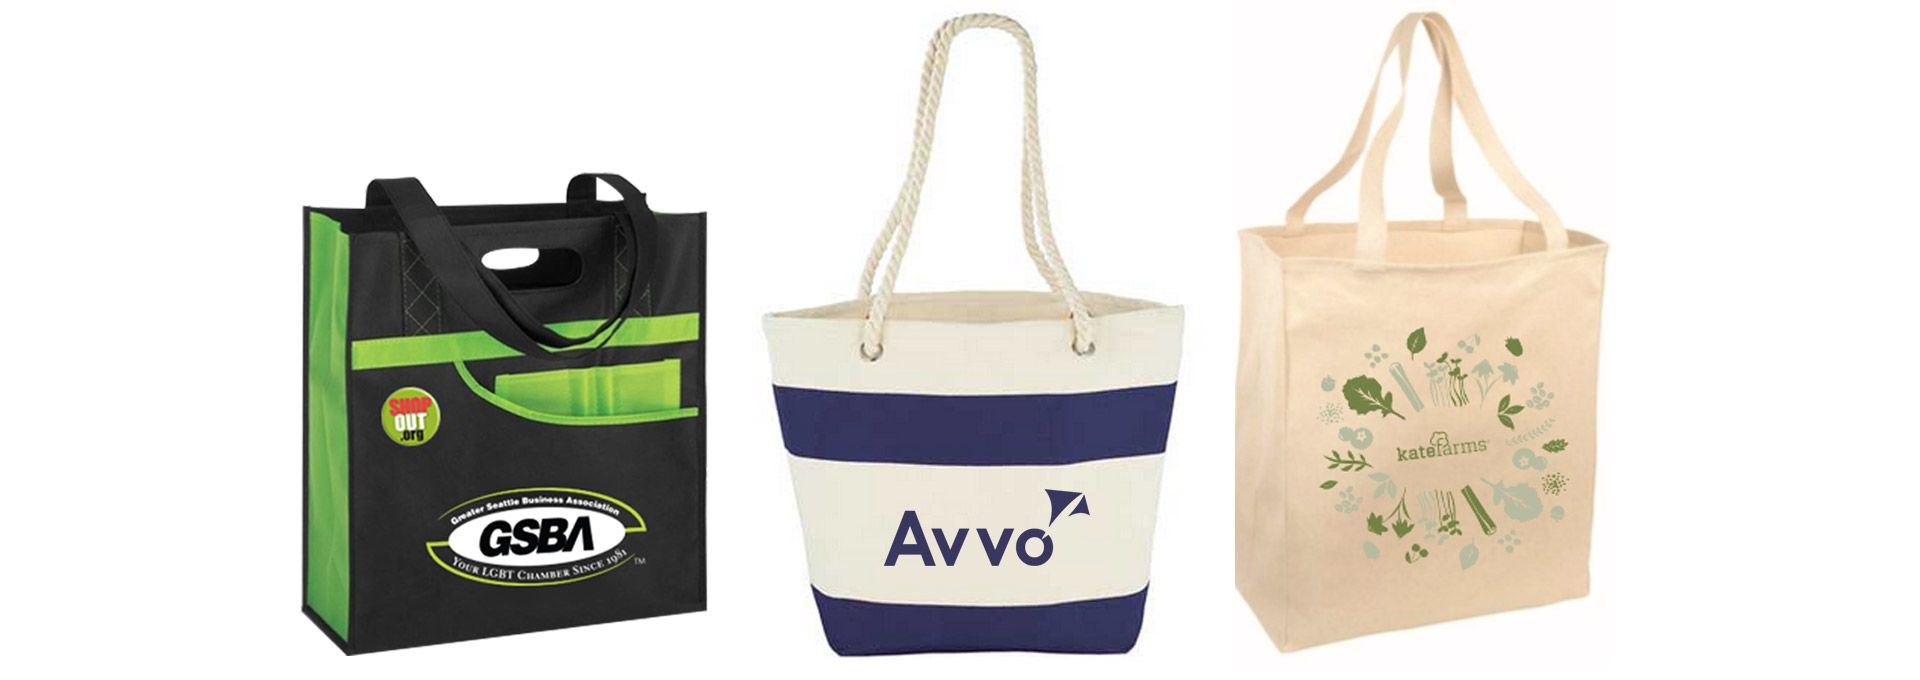 Custom Printed Branded Promotional Tote Bags Supplier Seattle